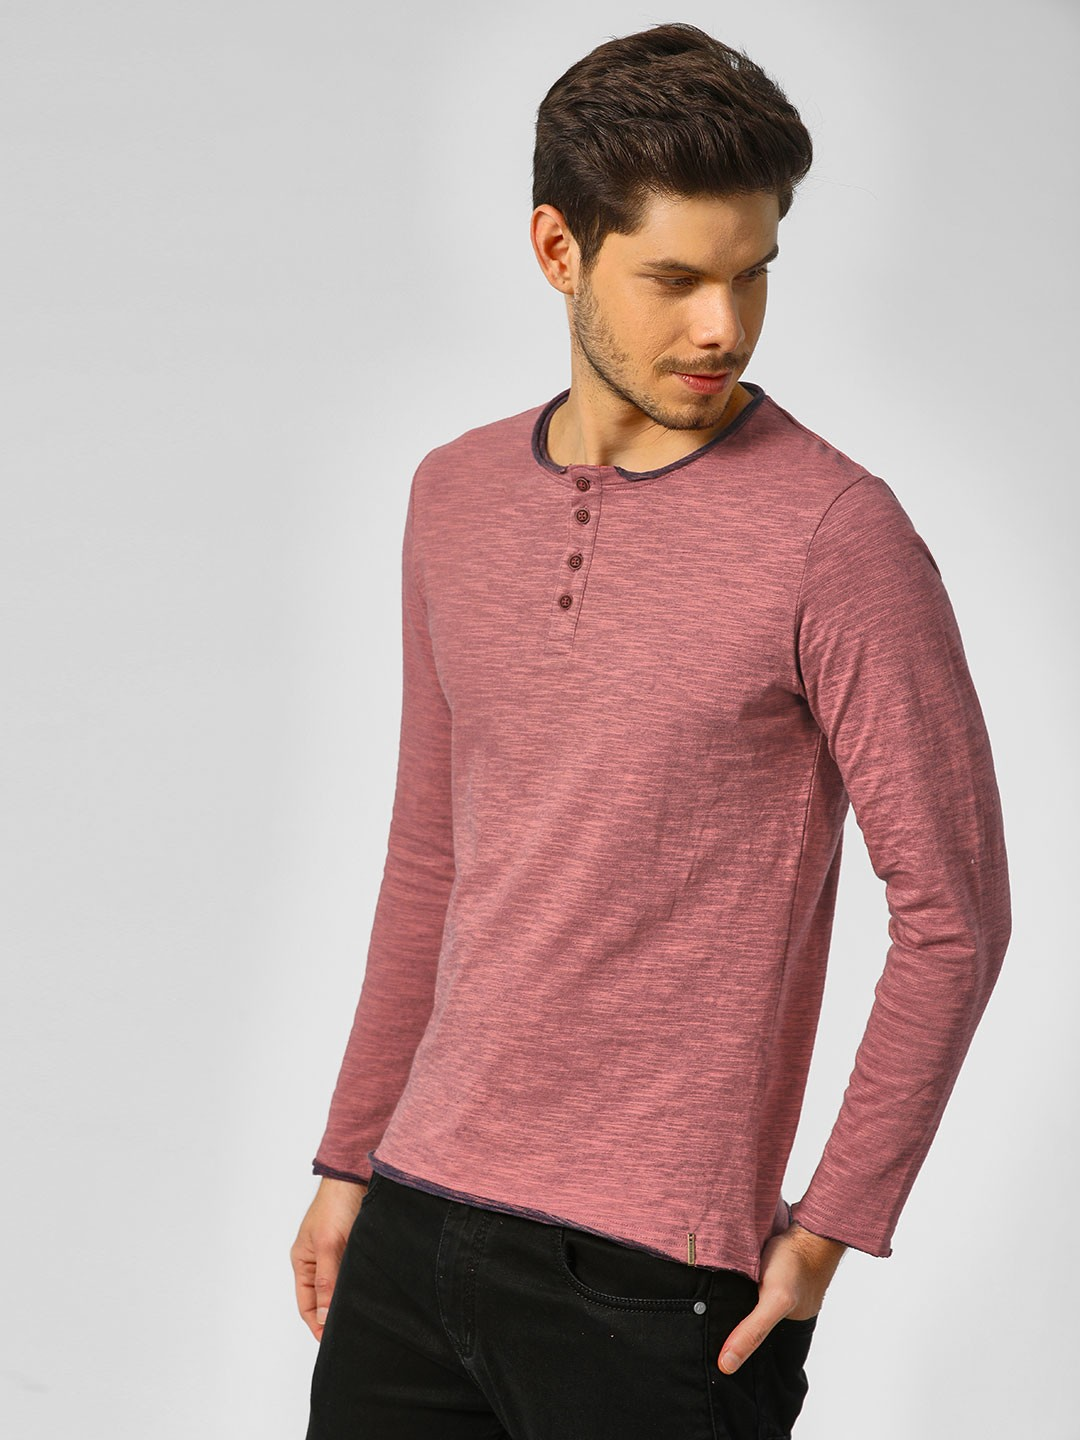 Indigo Nation Pink Long Sleeves T-Shirt With Button Detail 1